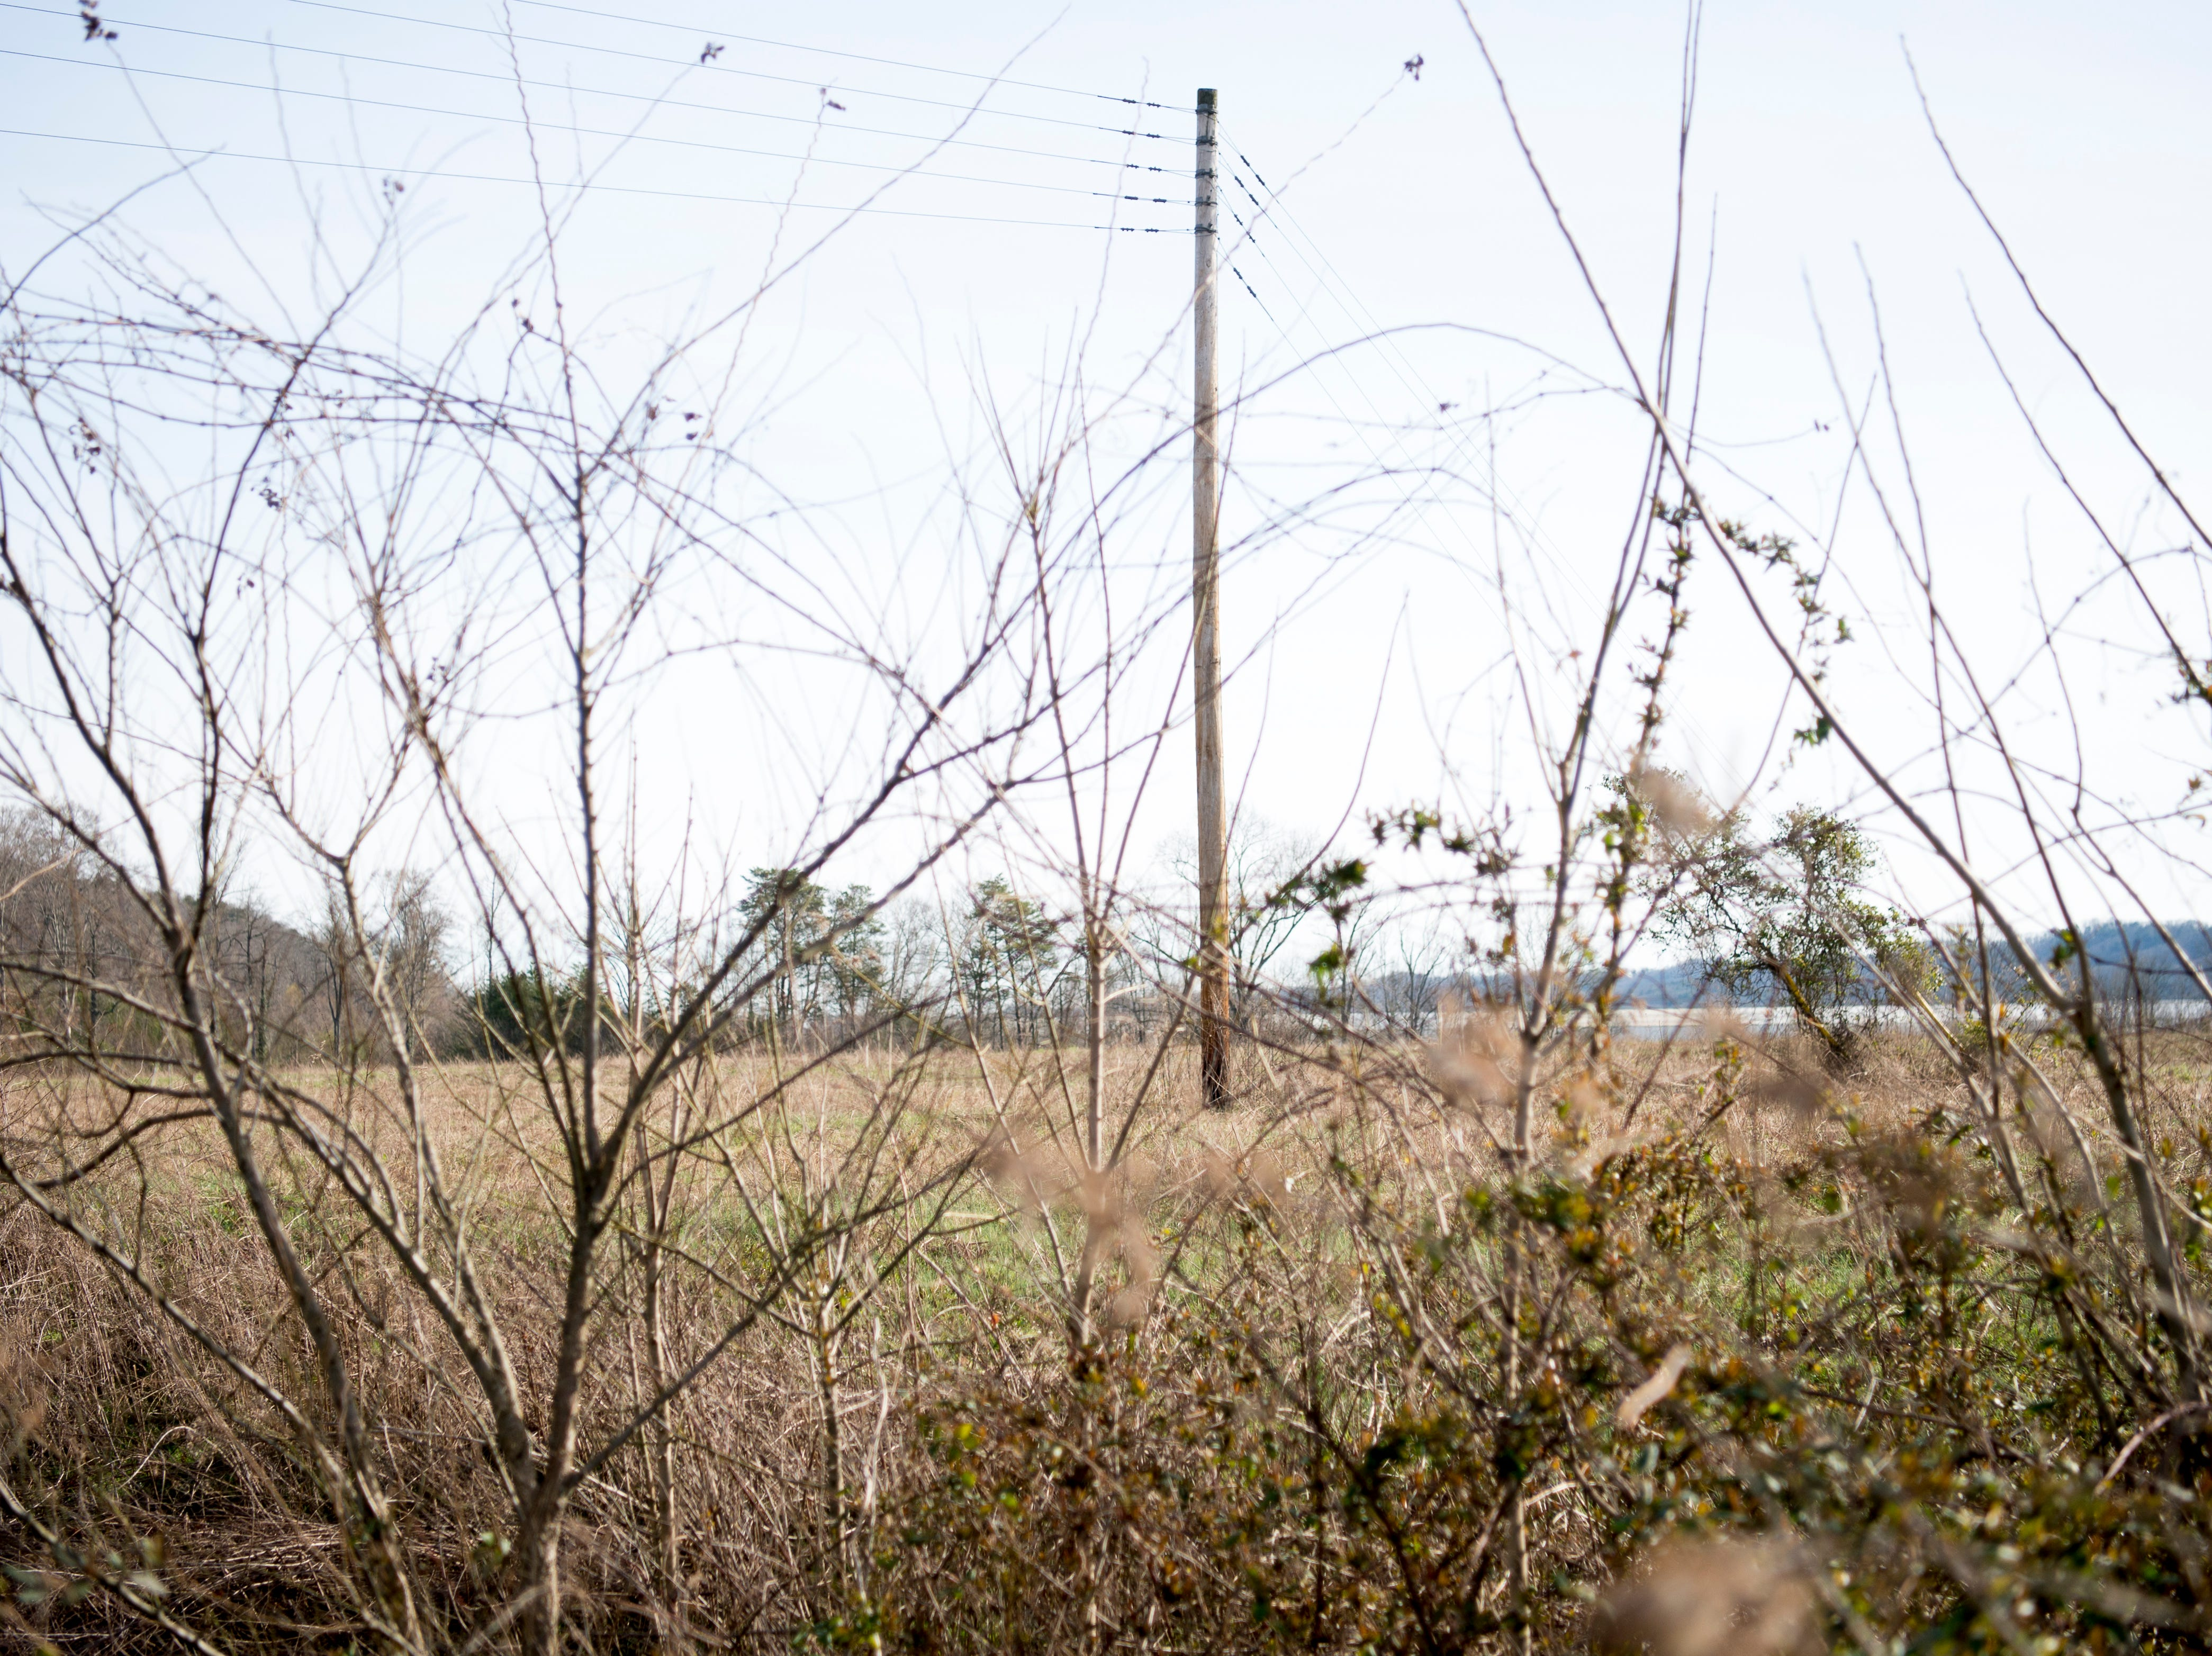 Overgrowth can be seen at the site of the future Aspire Park in Clinton, Tennessee on Tuesday, March 12, 2019. The Hollingsworth Foundation is looking to redevelop nearly 450 acres of land off Yarnell Road into a recreational park.